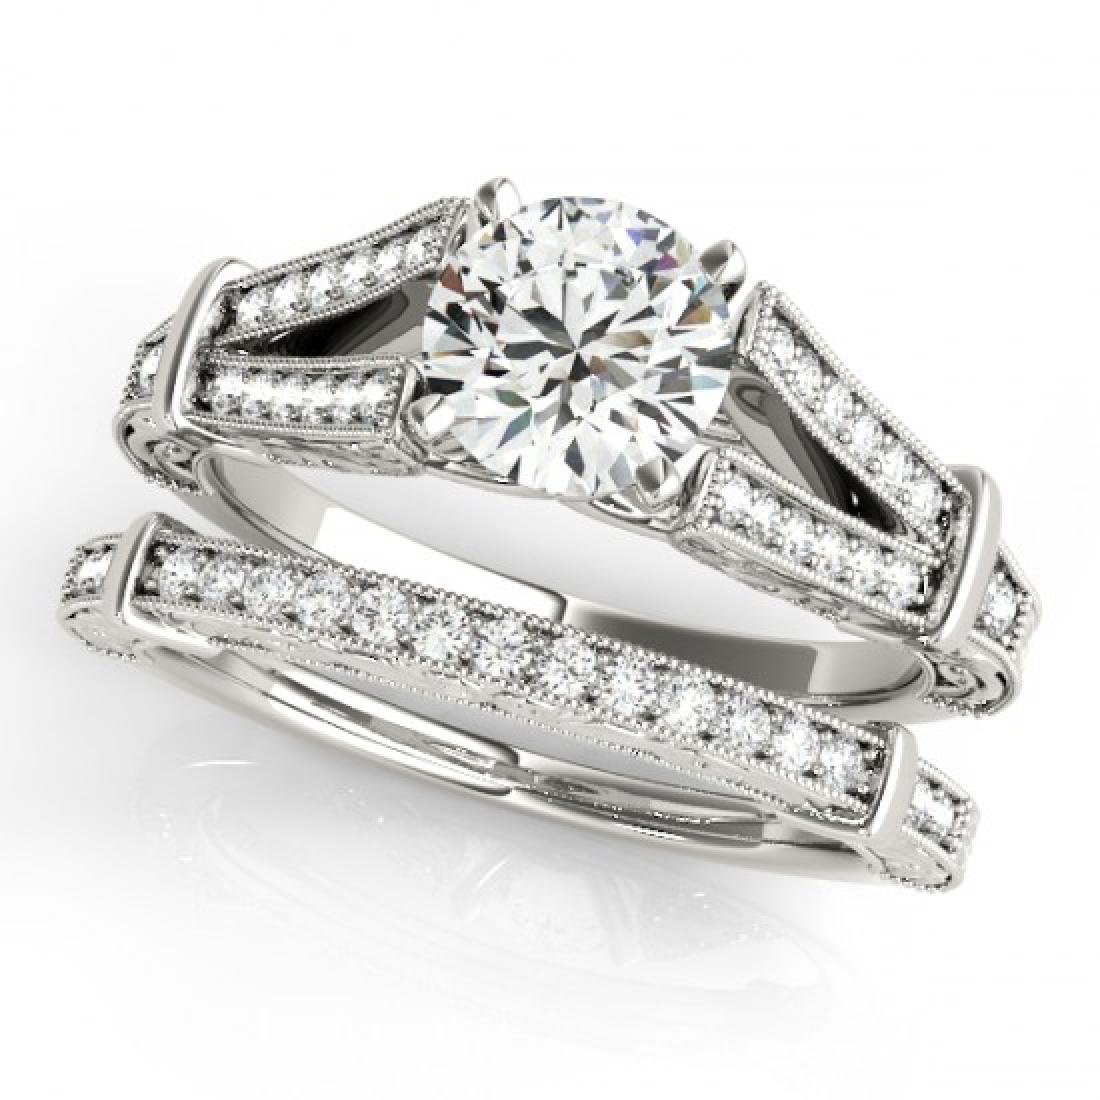 1.41 CTW Certified VS/SI Diamond Solitaire 2Pc Wedding